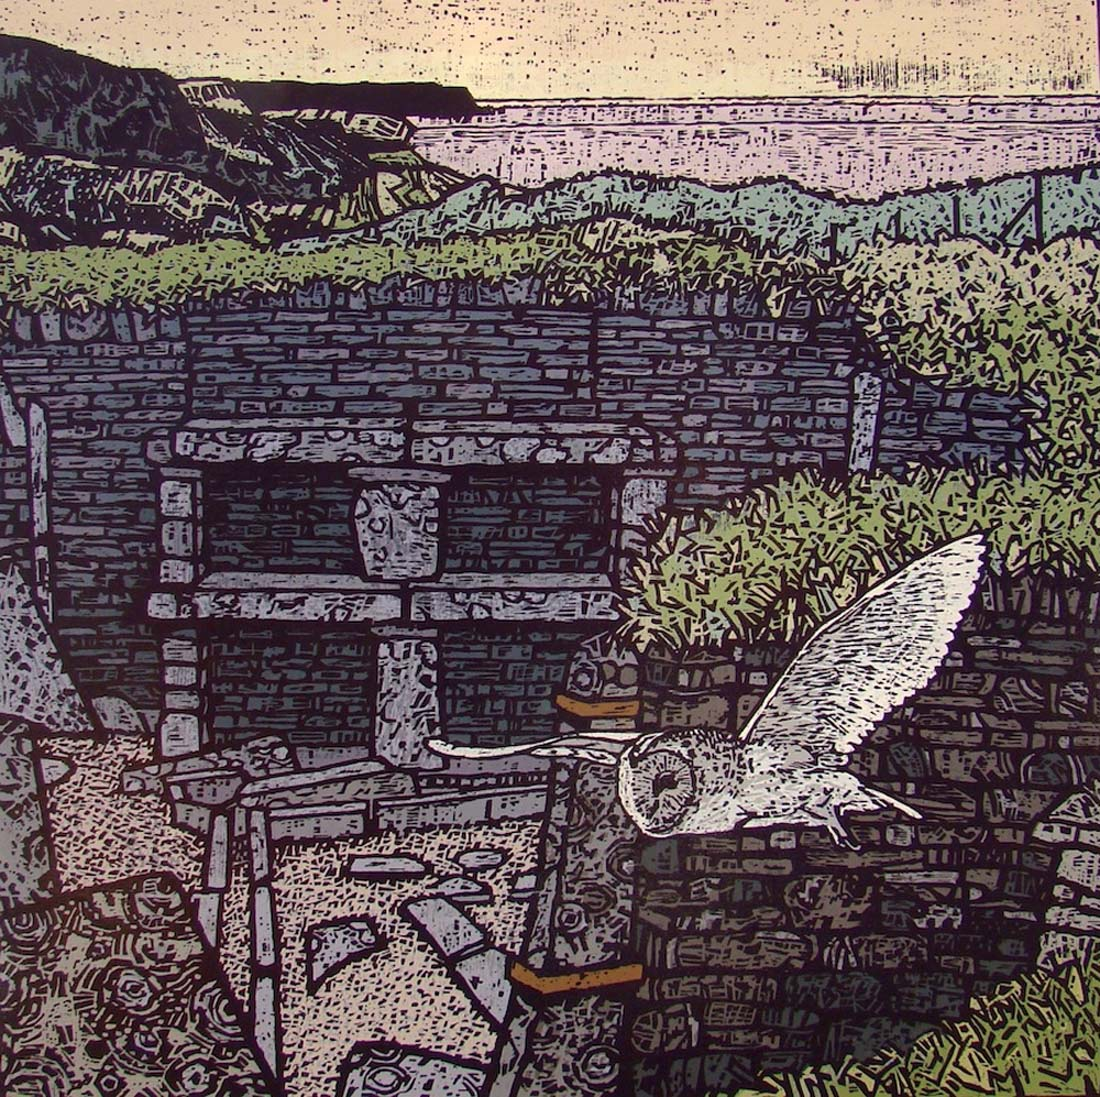 a woodcut print of an archaeological site with stone walls